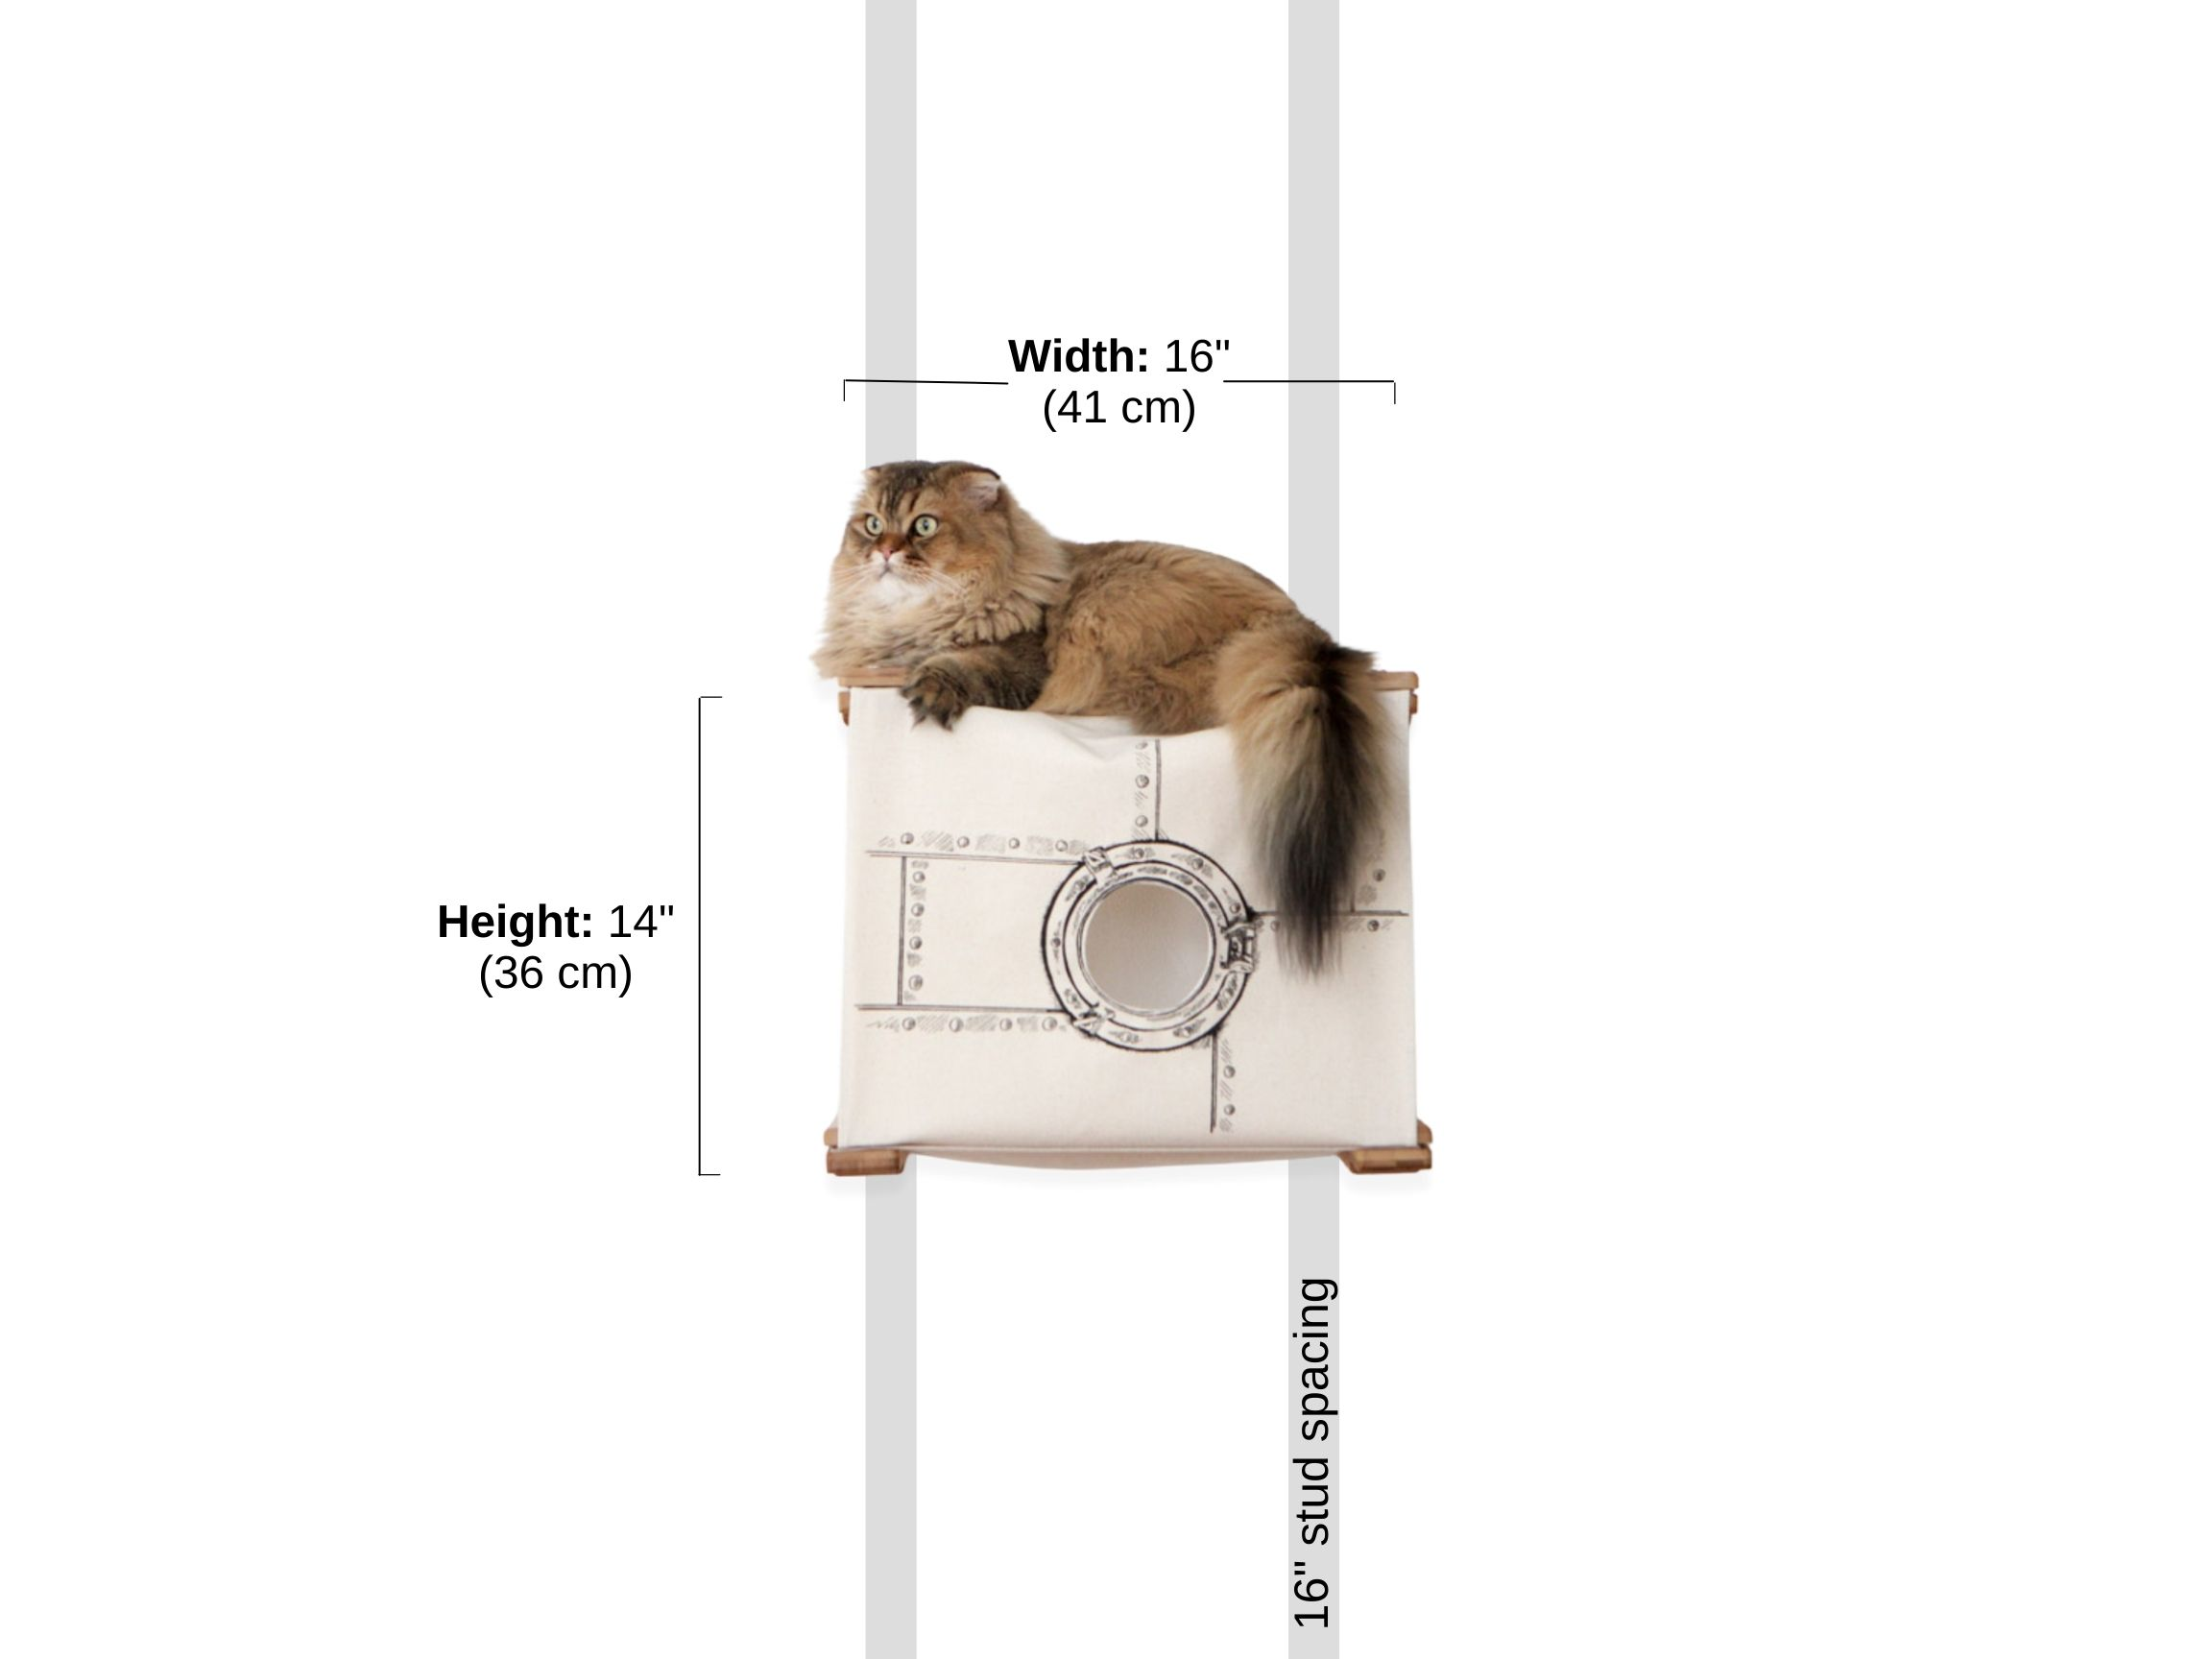 Stud spacing and Dimensions of standard cat cubbie